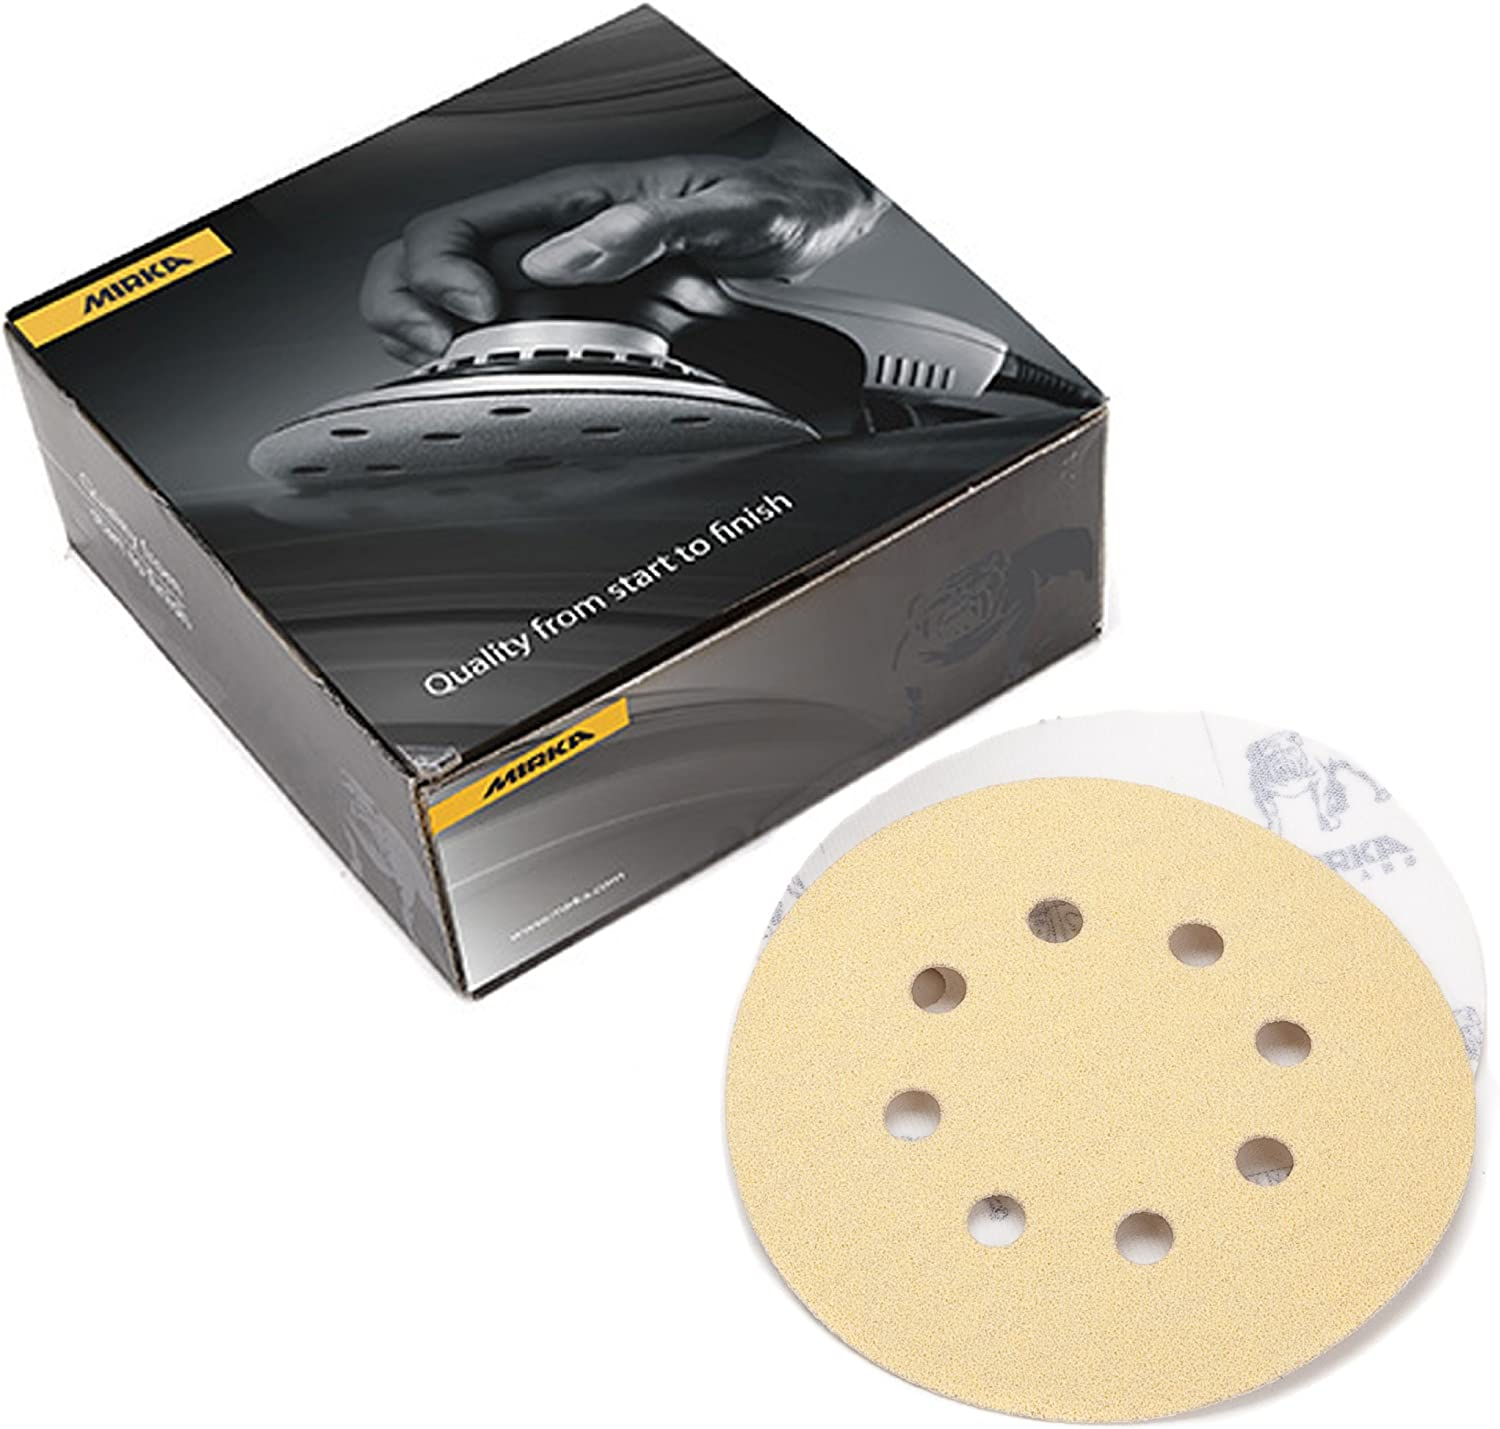 Mirka 23-615-AP Gold 5-Inch 8-Hole Dustless Hook-and-Loop Sanding Disks, 10 Each of 5 Grits 81g3Wf0Jx-L